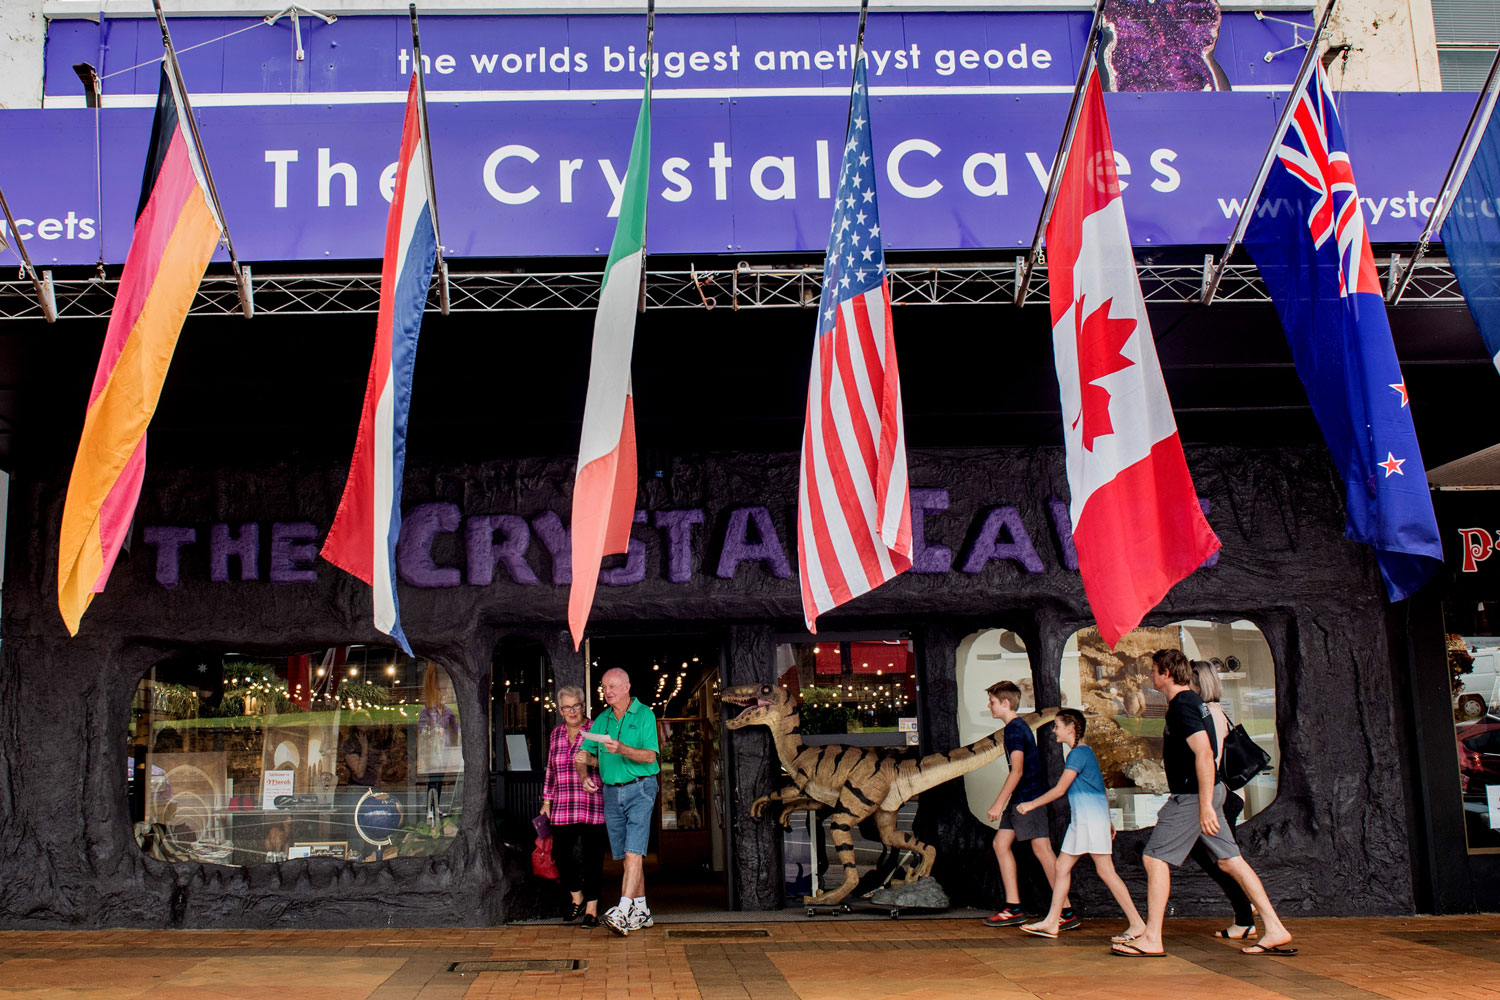 Bring on the sparklers – The Crystal Caves are 30